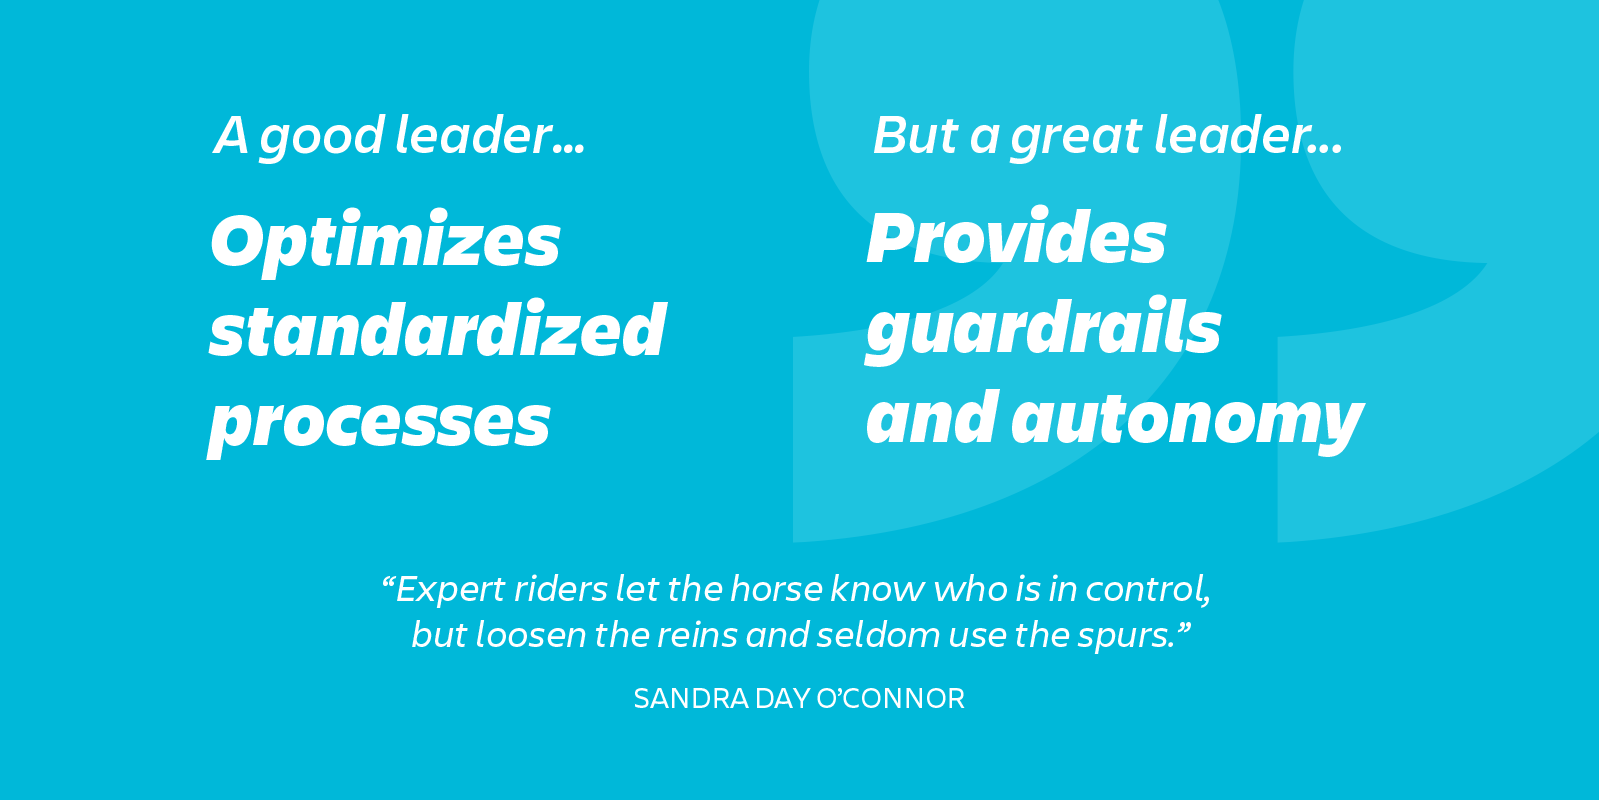 infographic: great leaders provide guardrails and autonomy